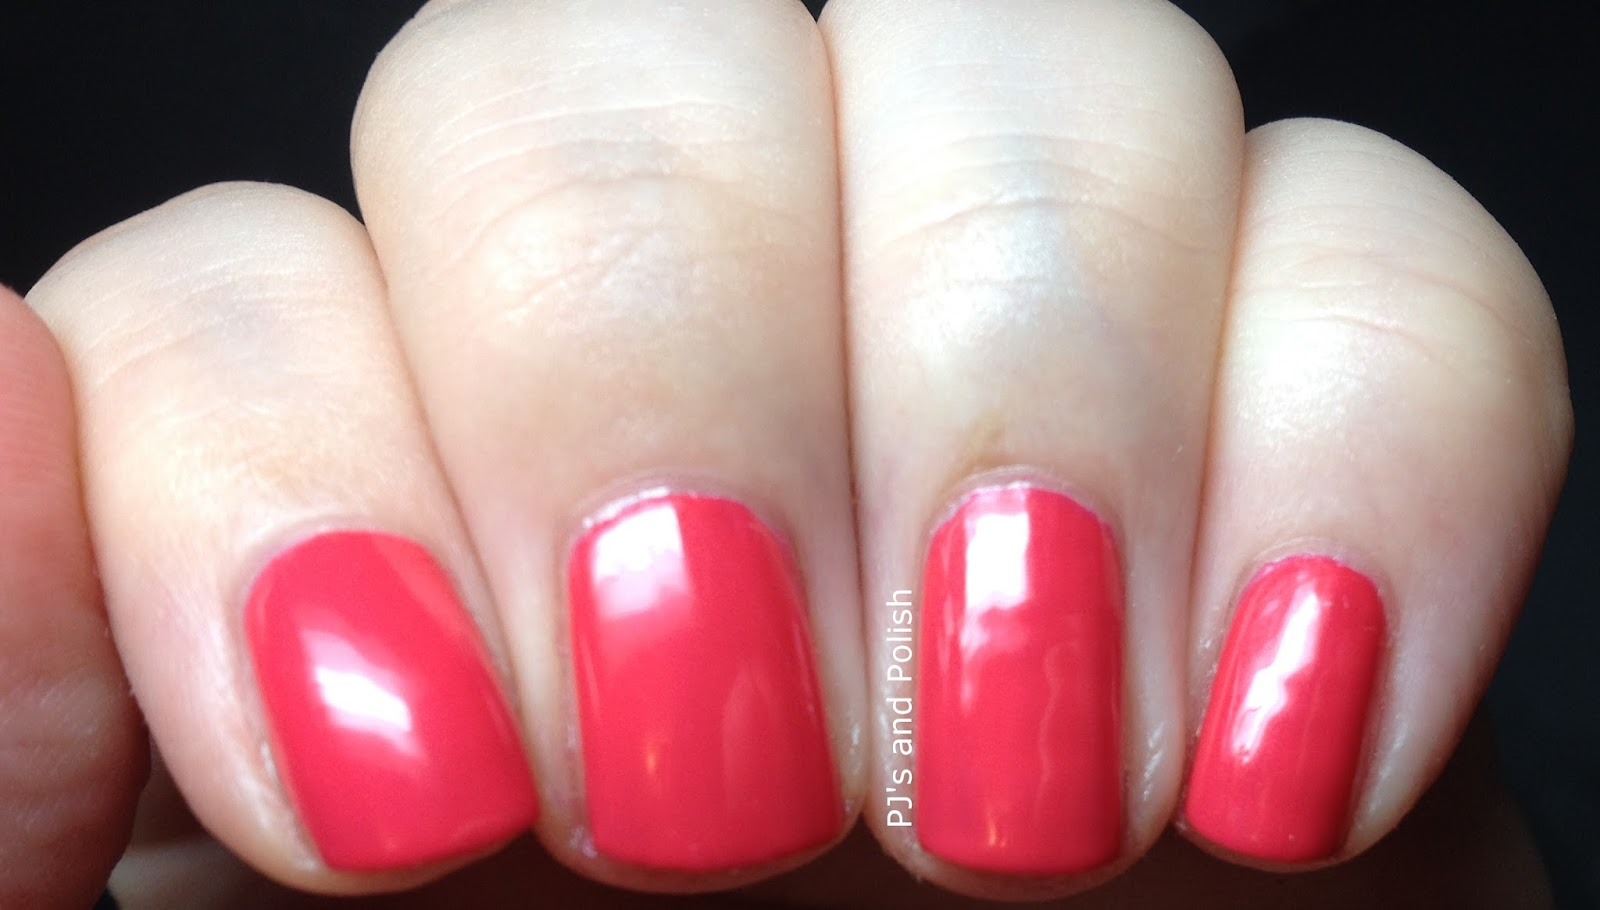 Swatch and Review Zoya Yana Stunning Collection HK Girl